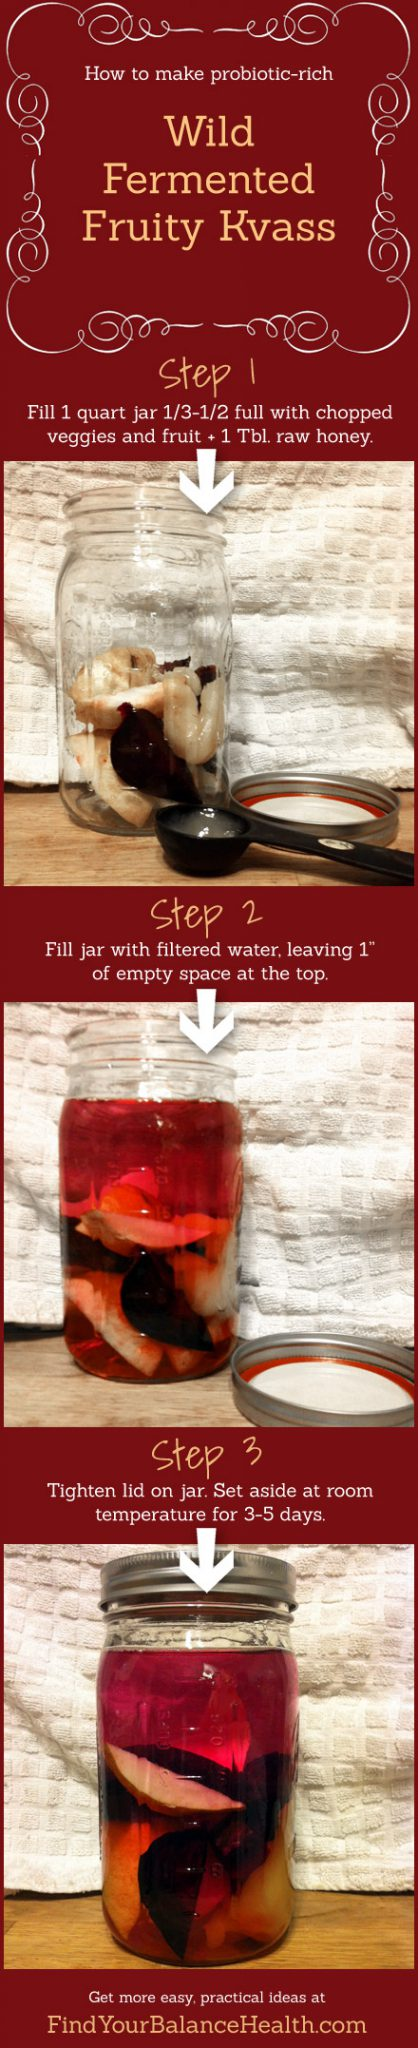 How to make probiotic-rich fruit kvass